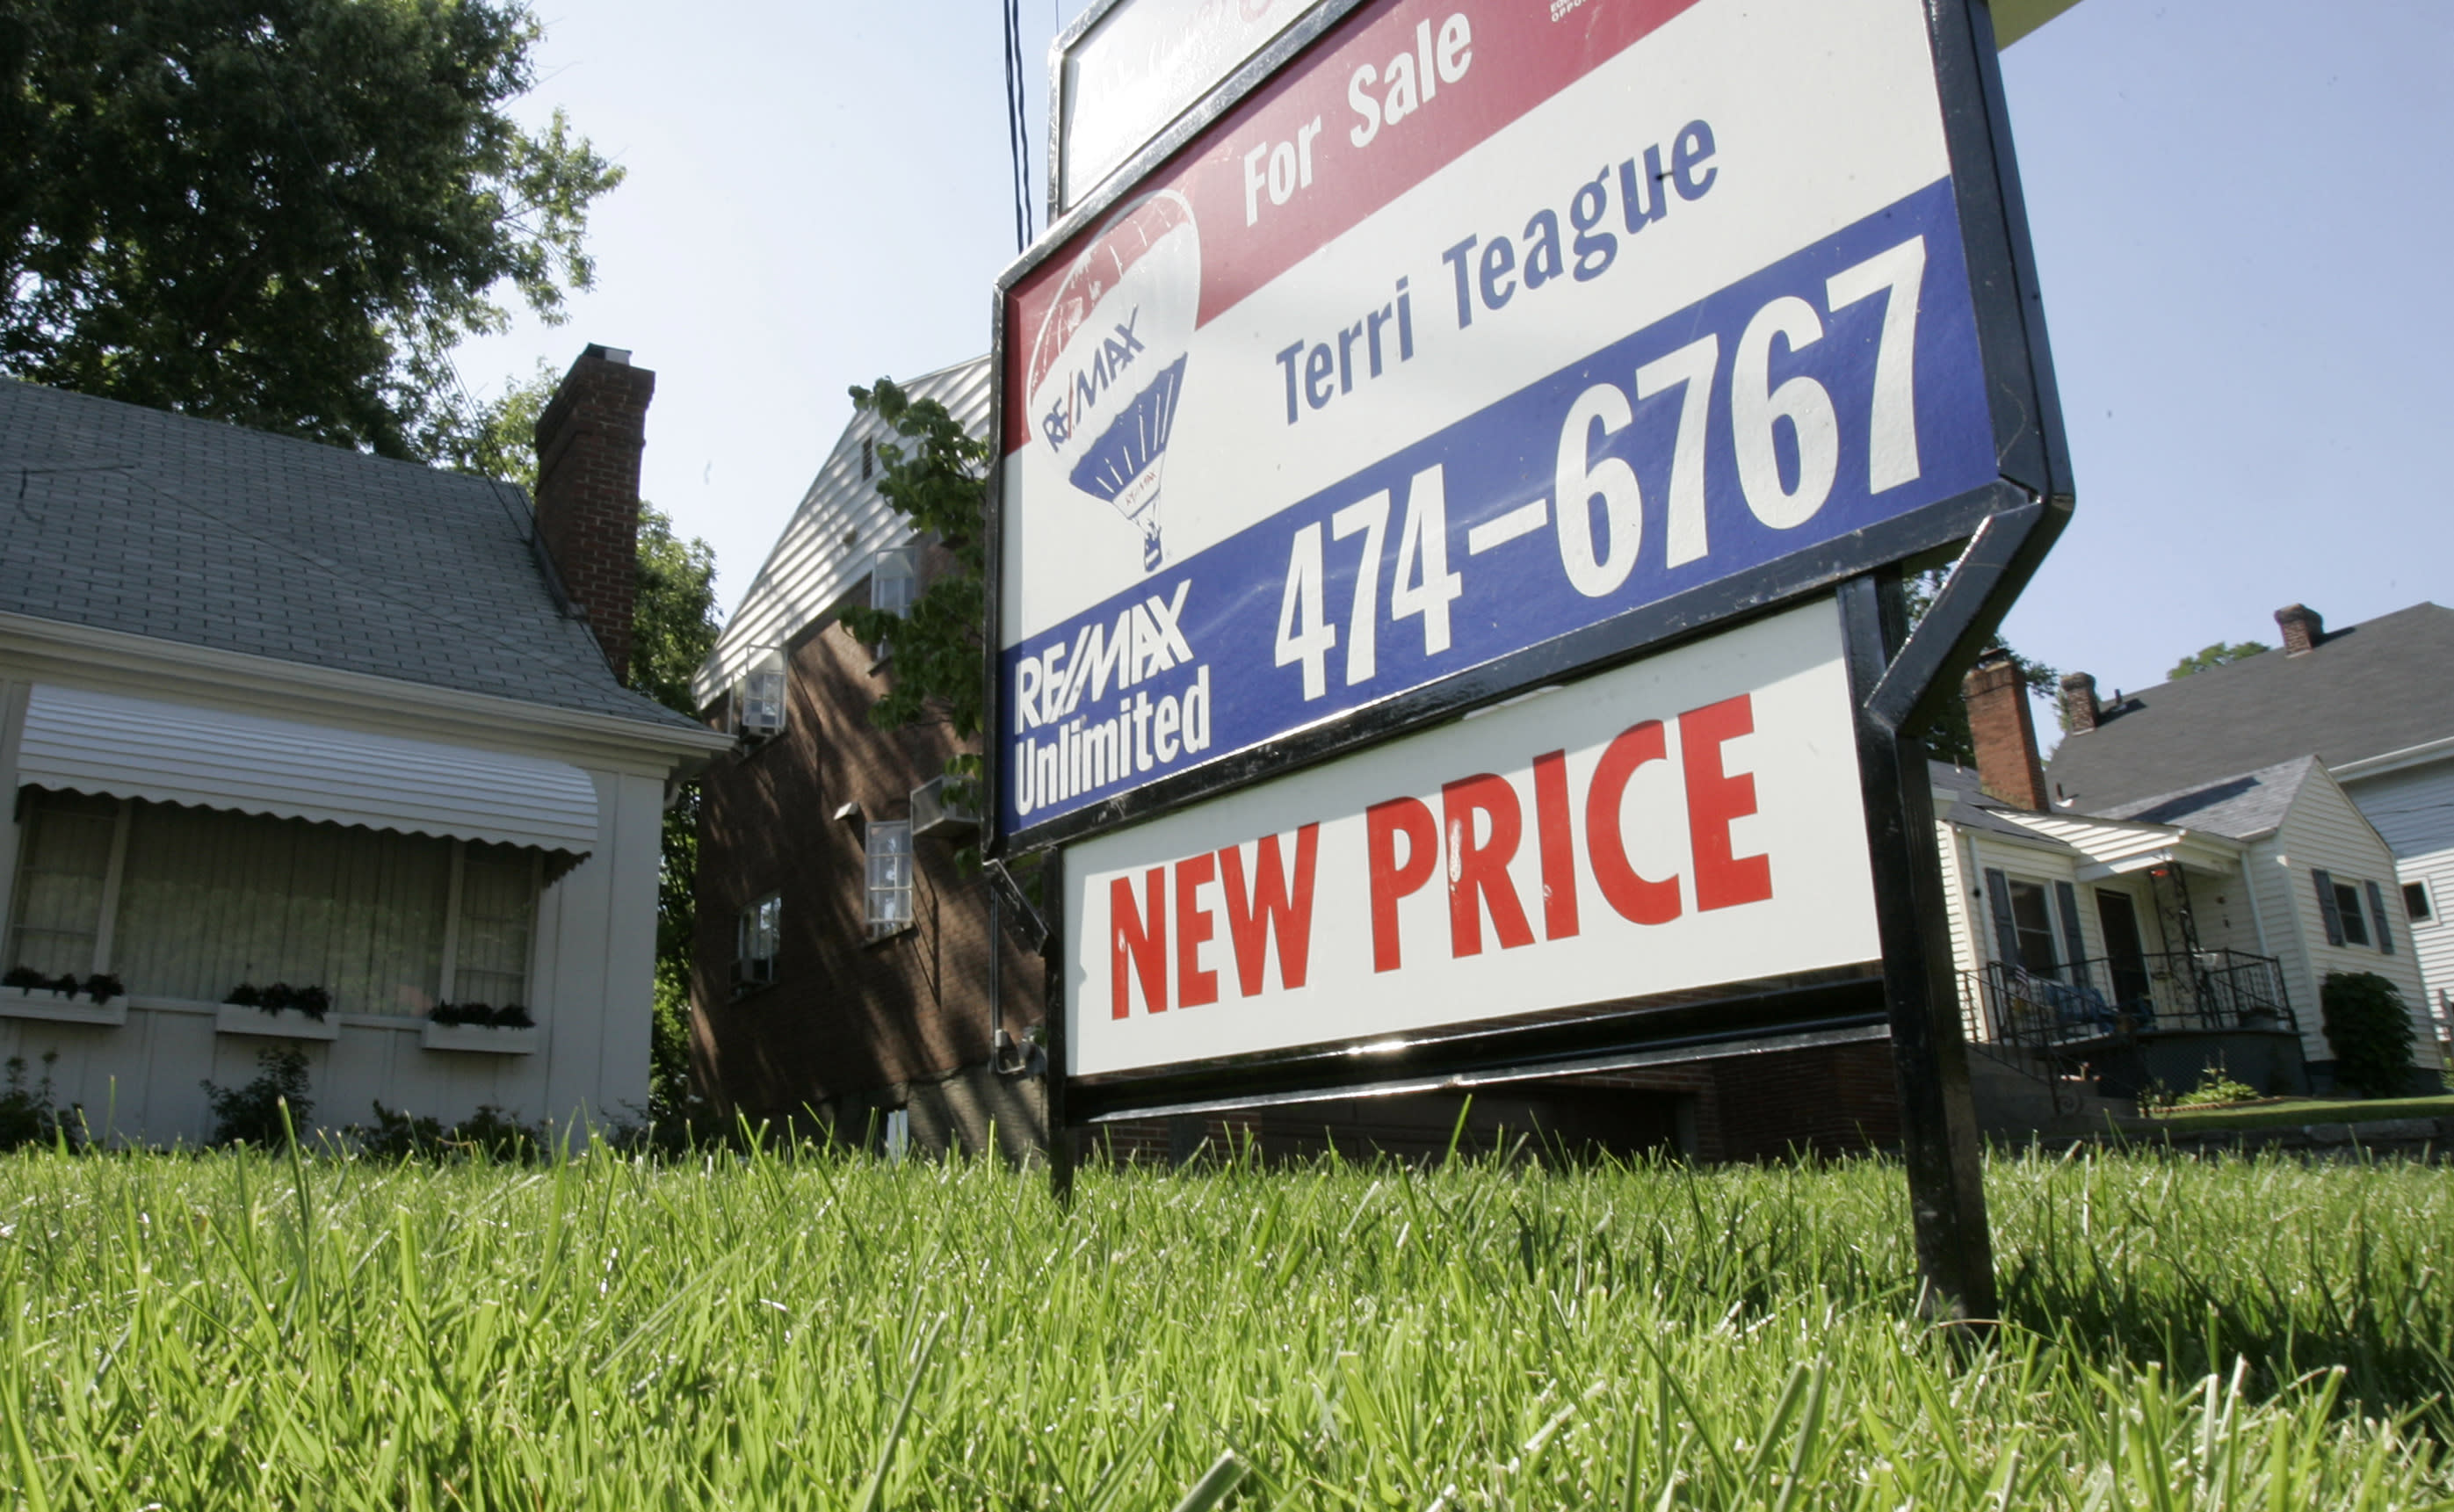 Home price growth accelerated at the start of 2020 before coronavirus slammed the US